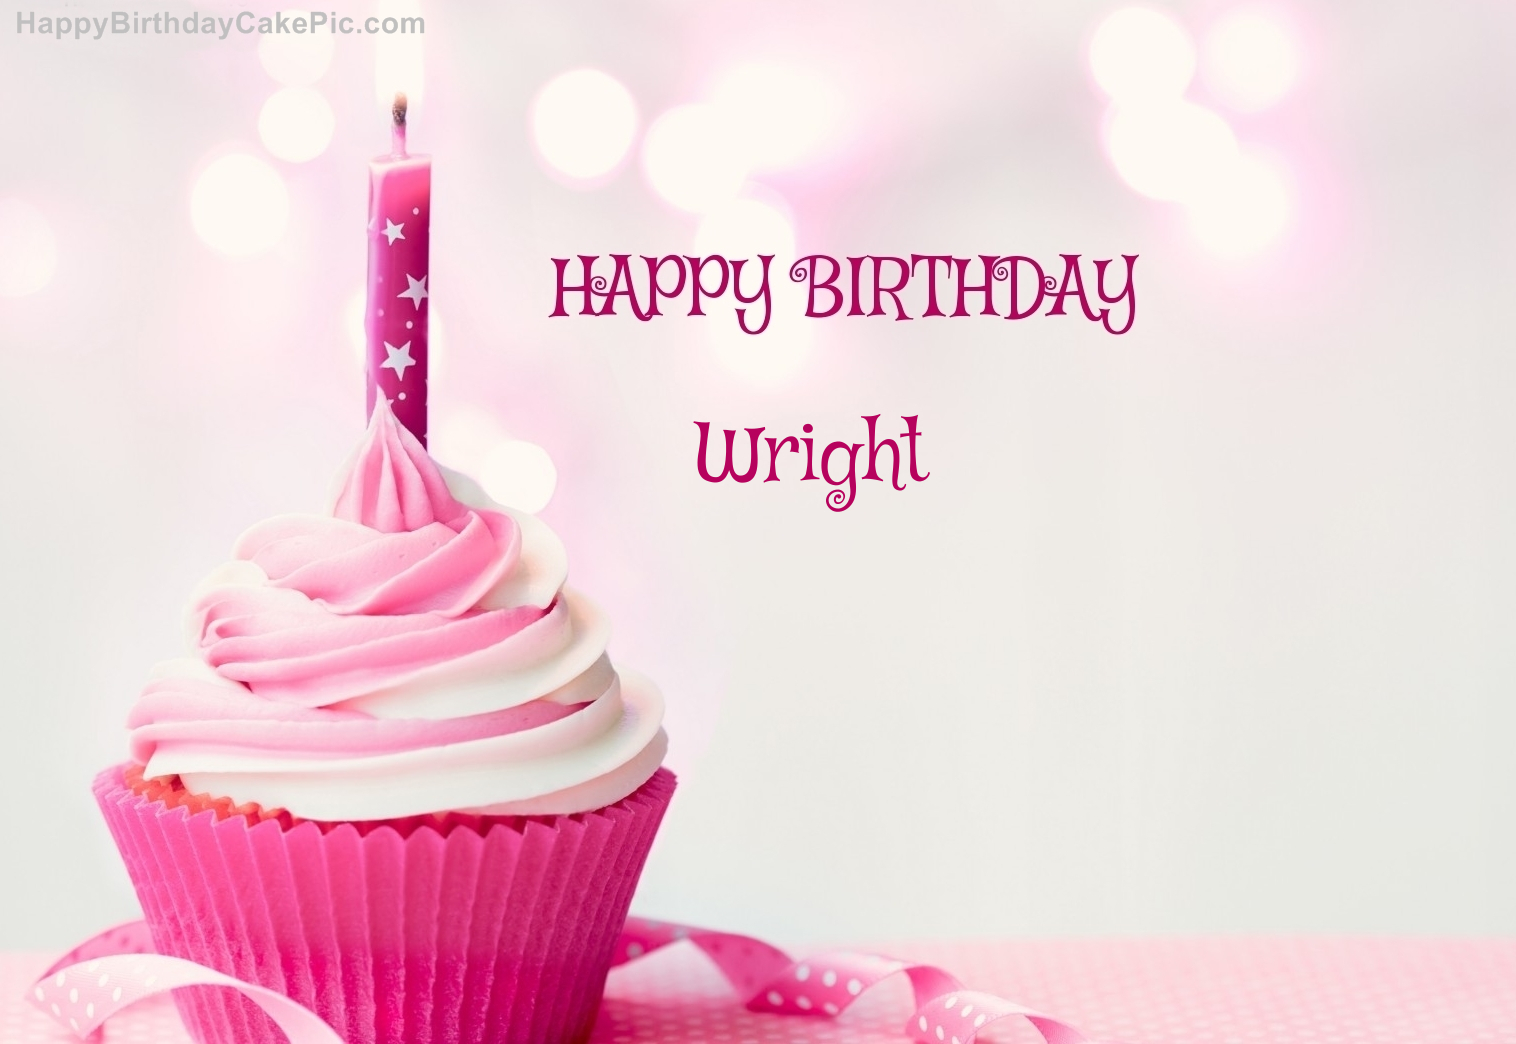 Happy Birthday Cupcake Candle Pink Cake For Wright